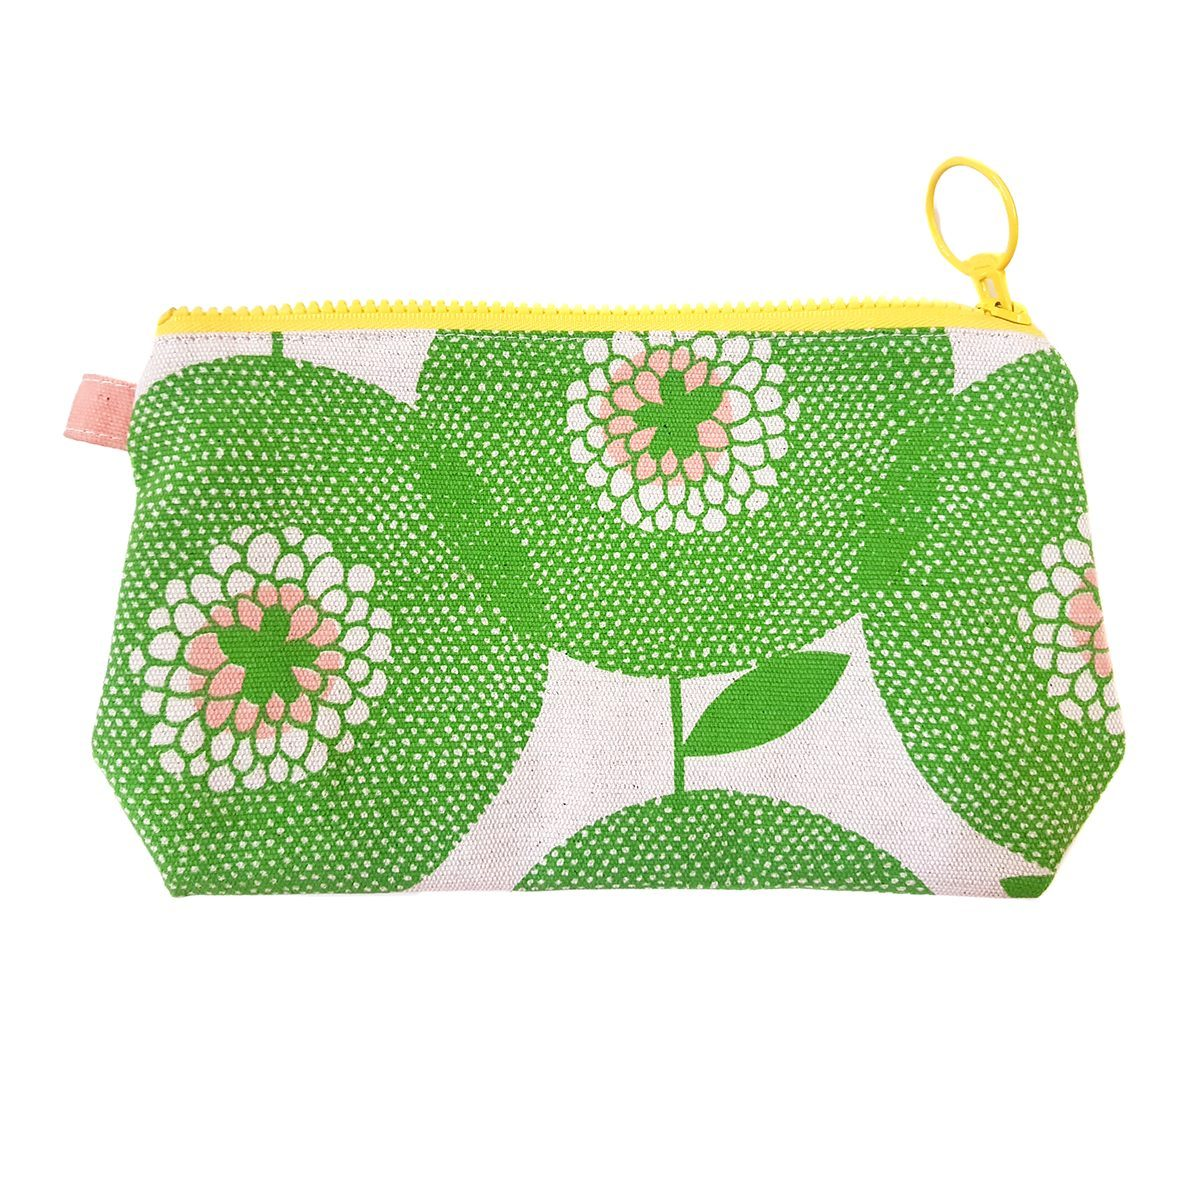 FLOWER FIELDS STASH BAG by Skinny laMinx at SARZA. accessories, accessory bag, accessory bags, bags, Brise Soleil, flower fields, penny black, purses, Skinny laMinx, stash bags, zip pouch, zip pouches